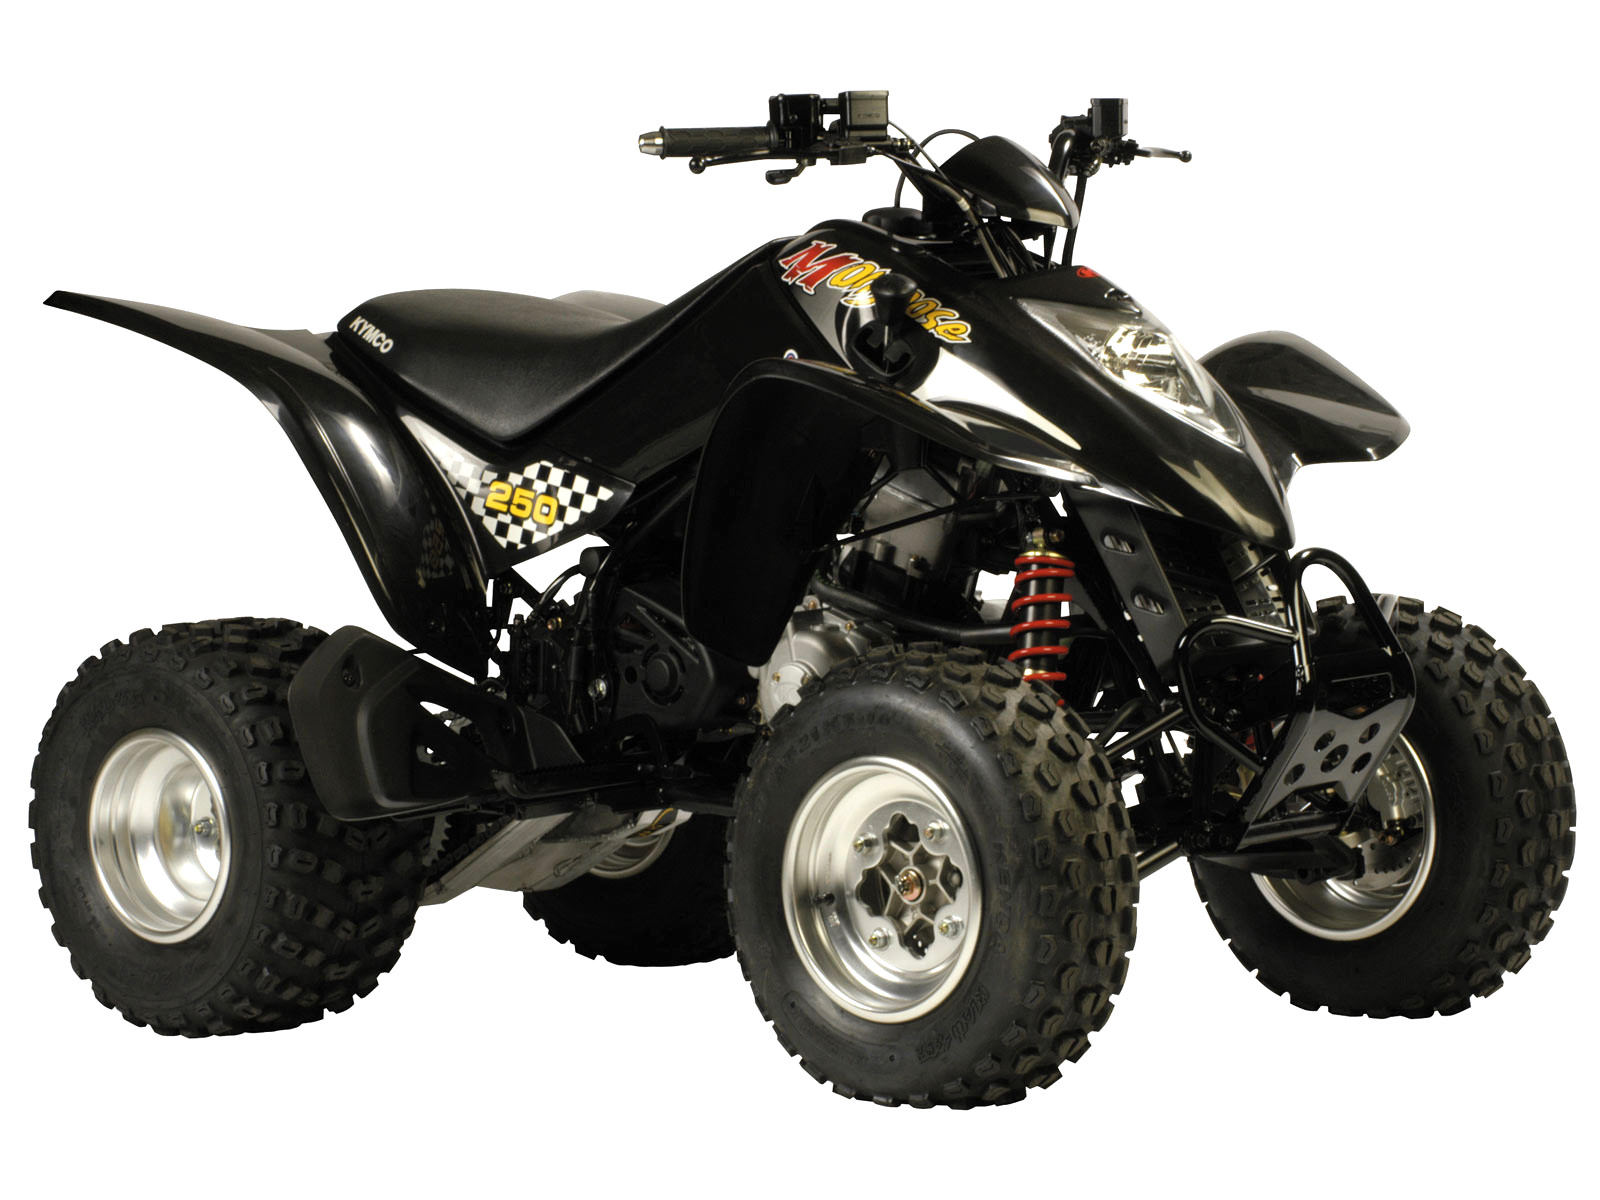 2006 mongoose 250 kymco atv pictures specs insurance info. Black Bedroom Furniture Sets. Home Design Ideas